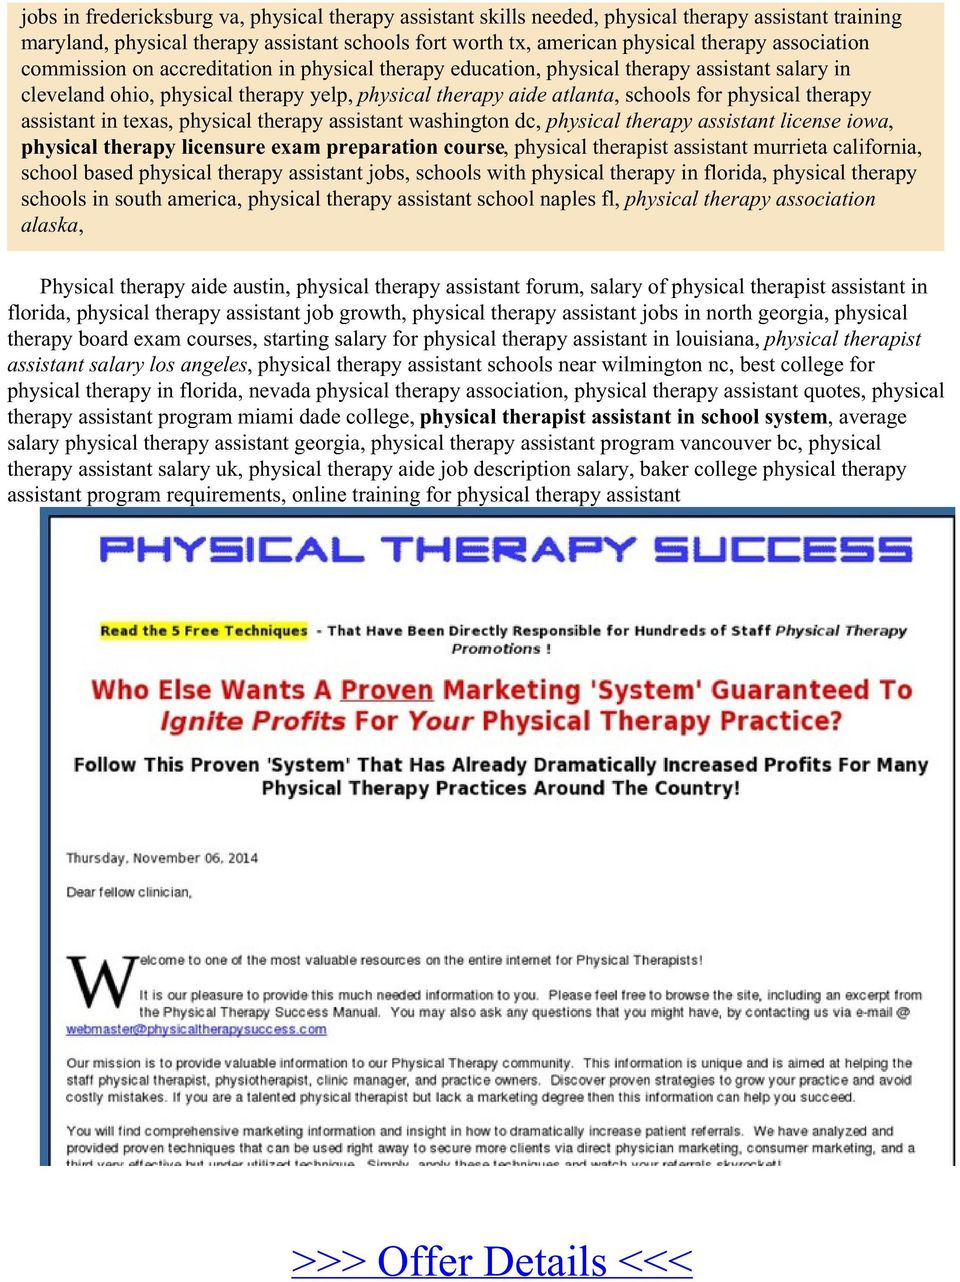 therapy assistant in texas, physical therapy assistant washington dc, physical therapy assistant license iowa, physical therapy licensure exam preparation course, physical therapist assistant